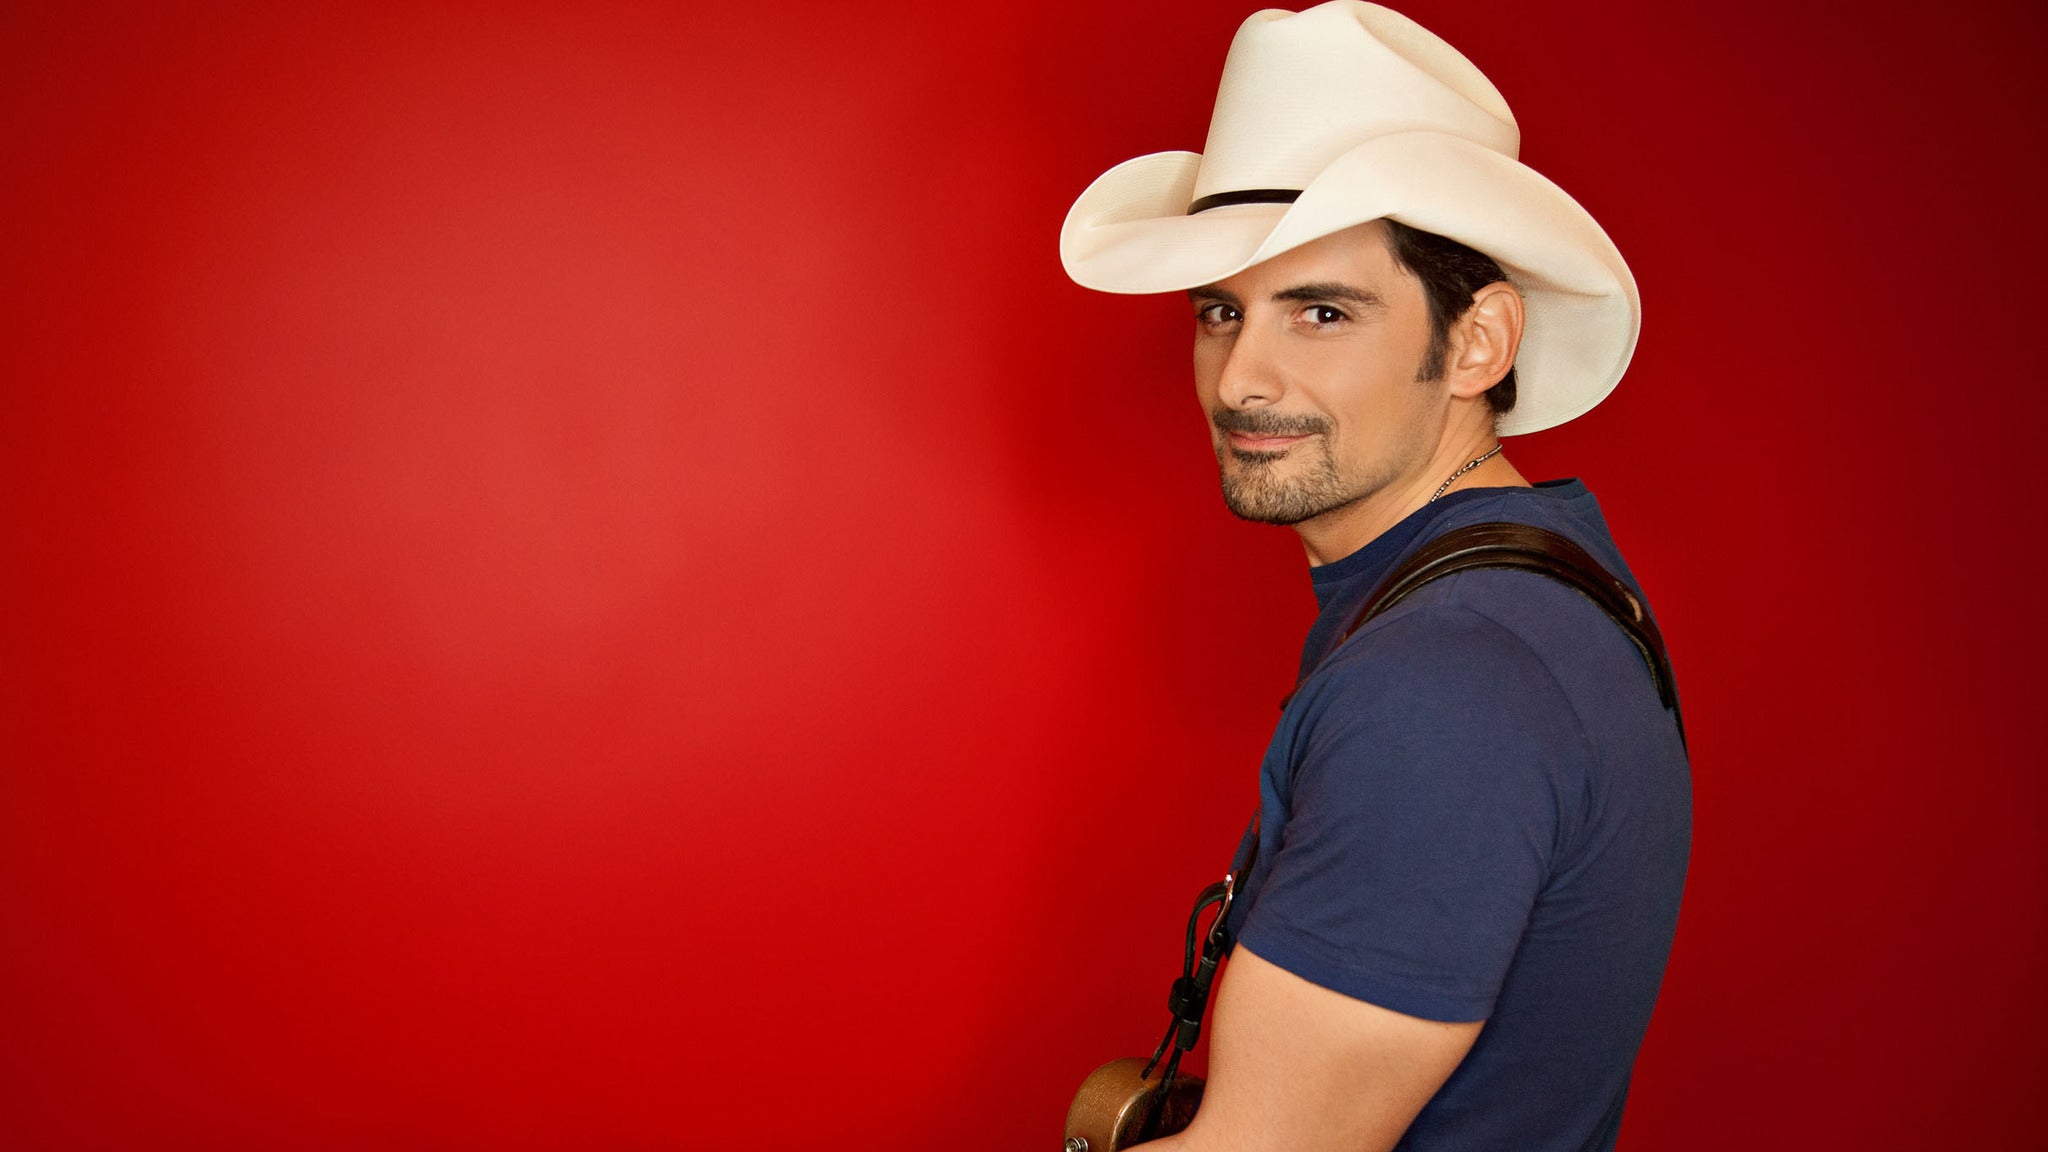 Brad Paisley at STAPLES Center - Los Angeles, CA 90017